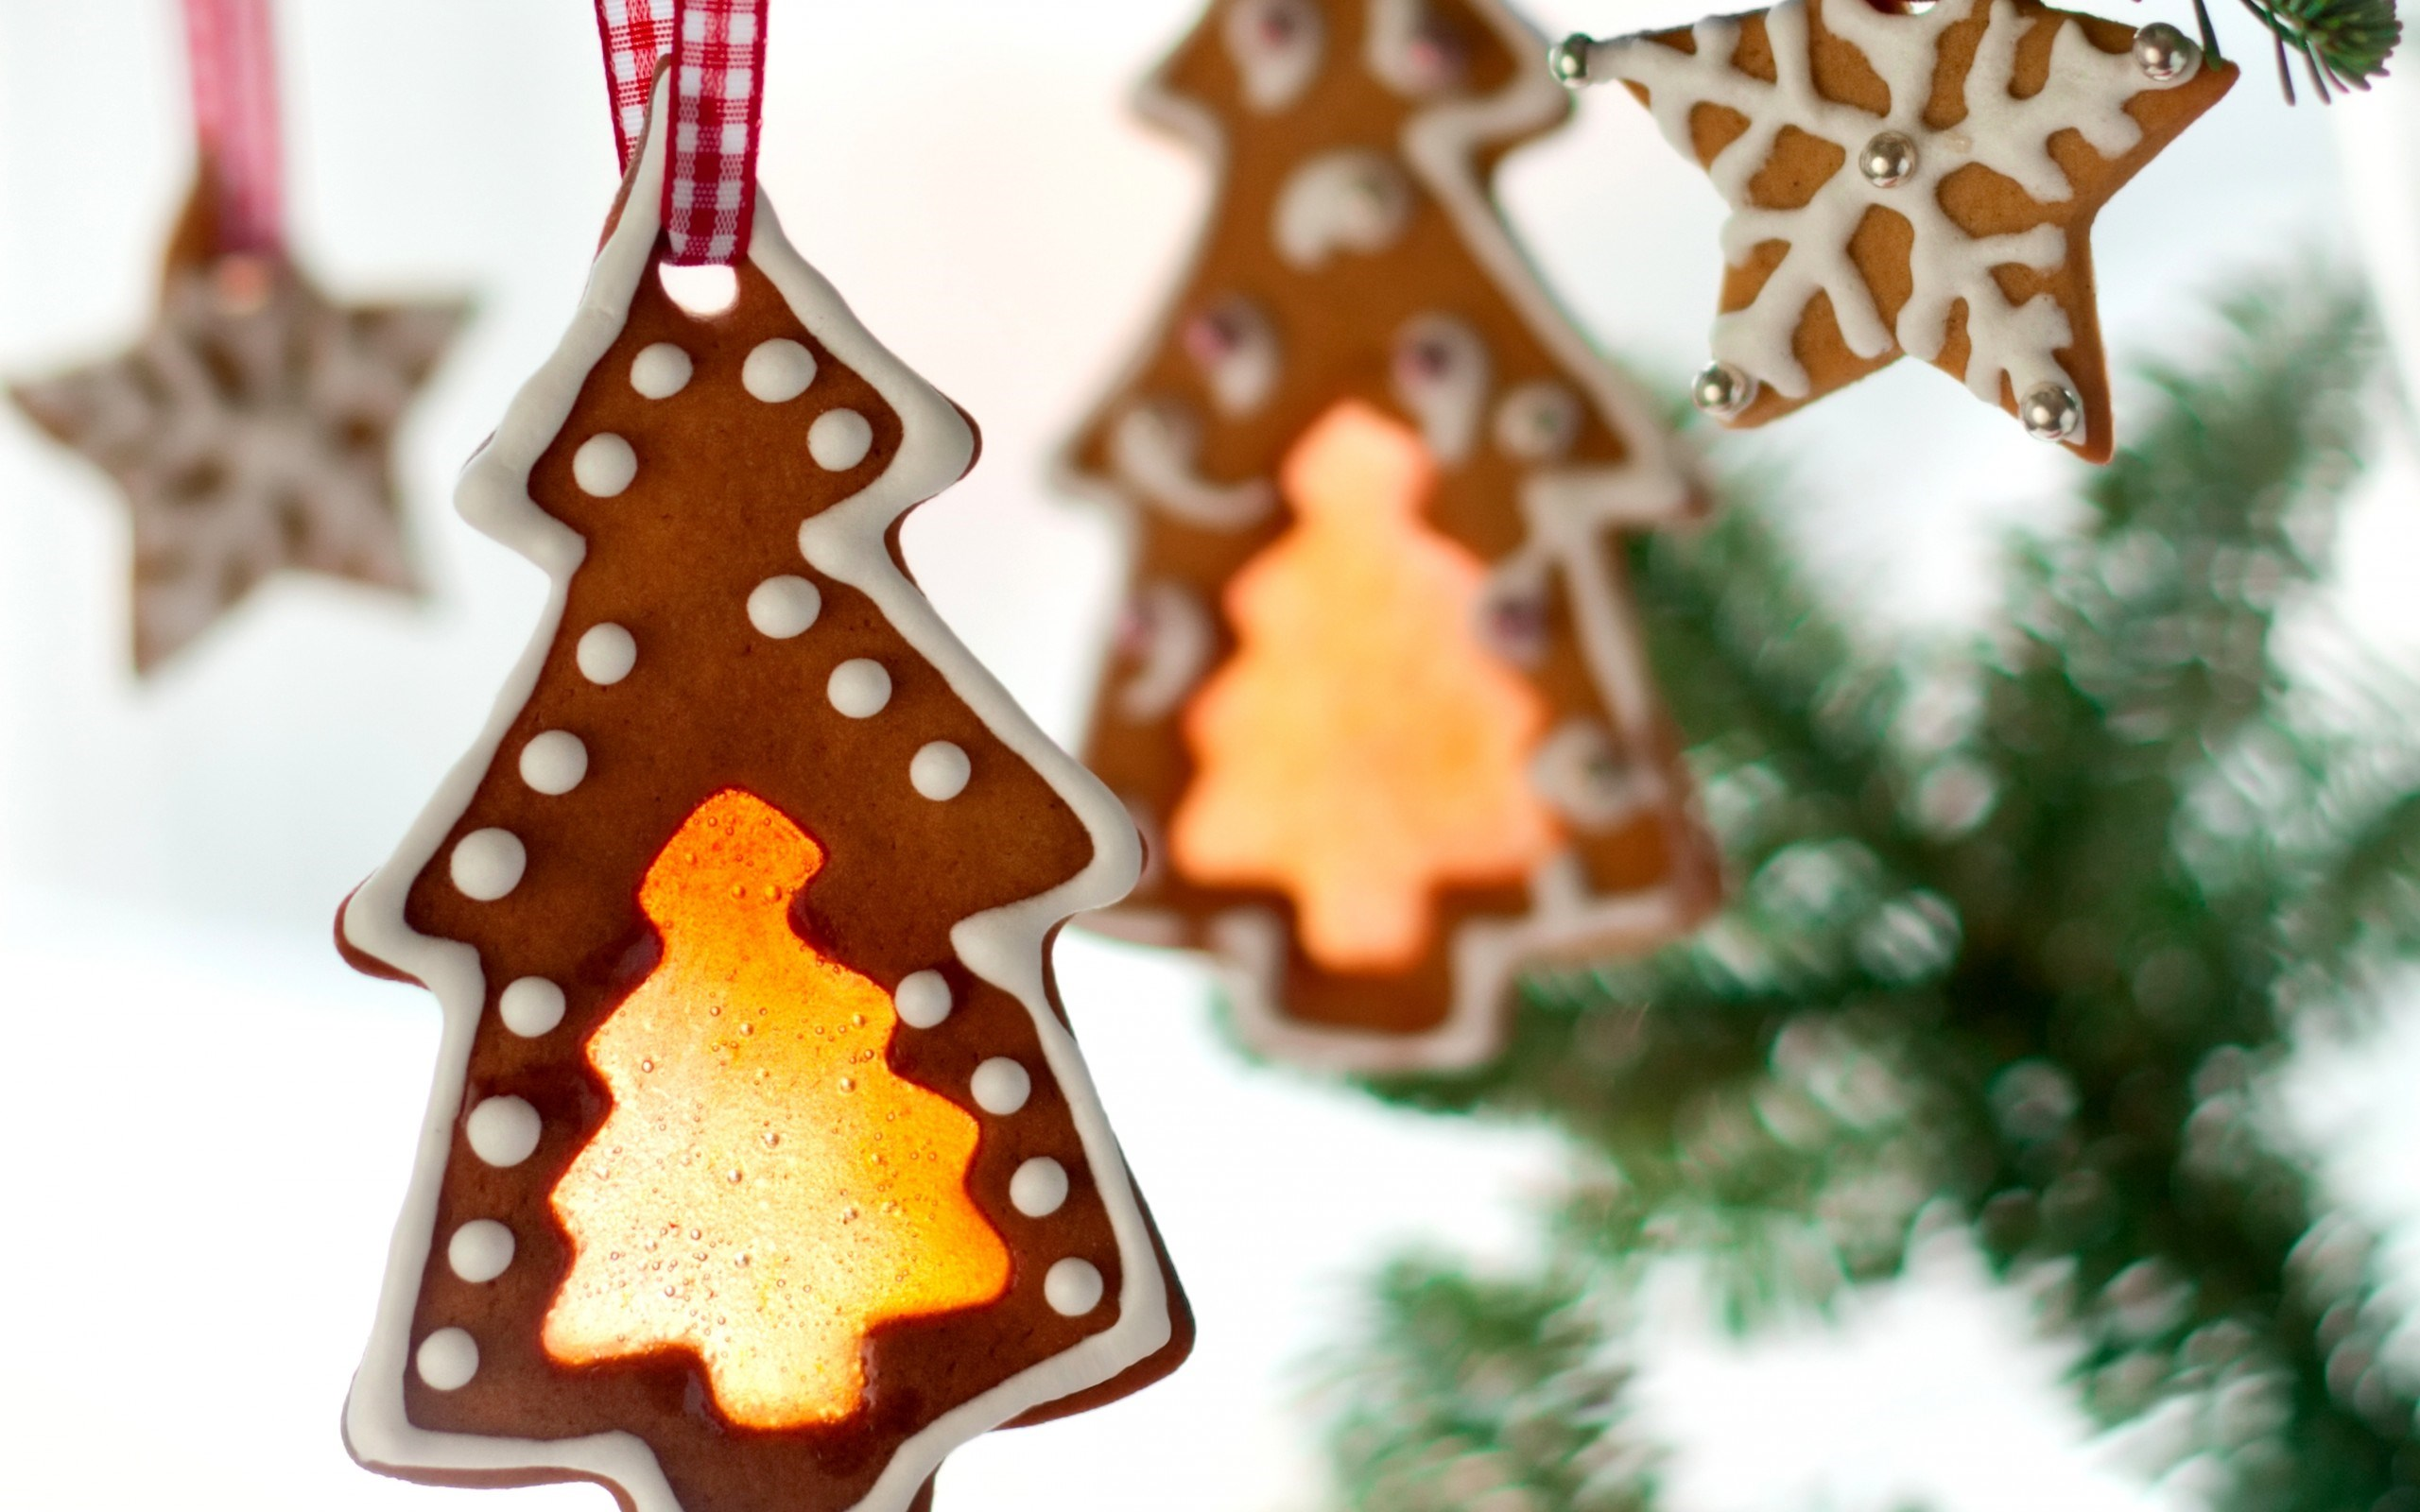 Christmas Cookies Wallpaper 40520 2560x1600 px ...